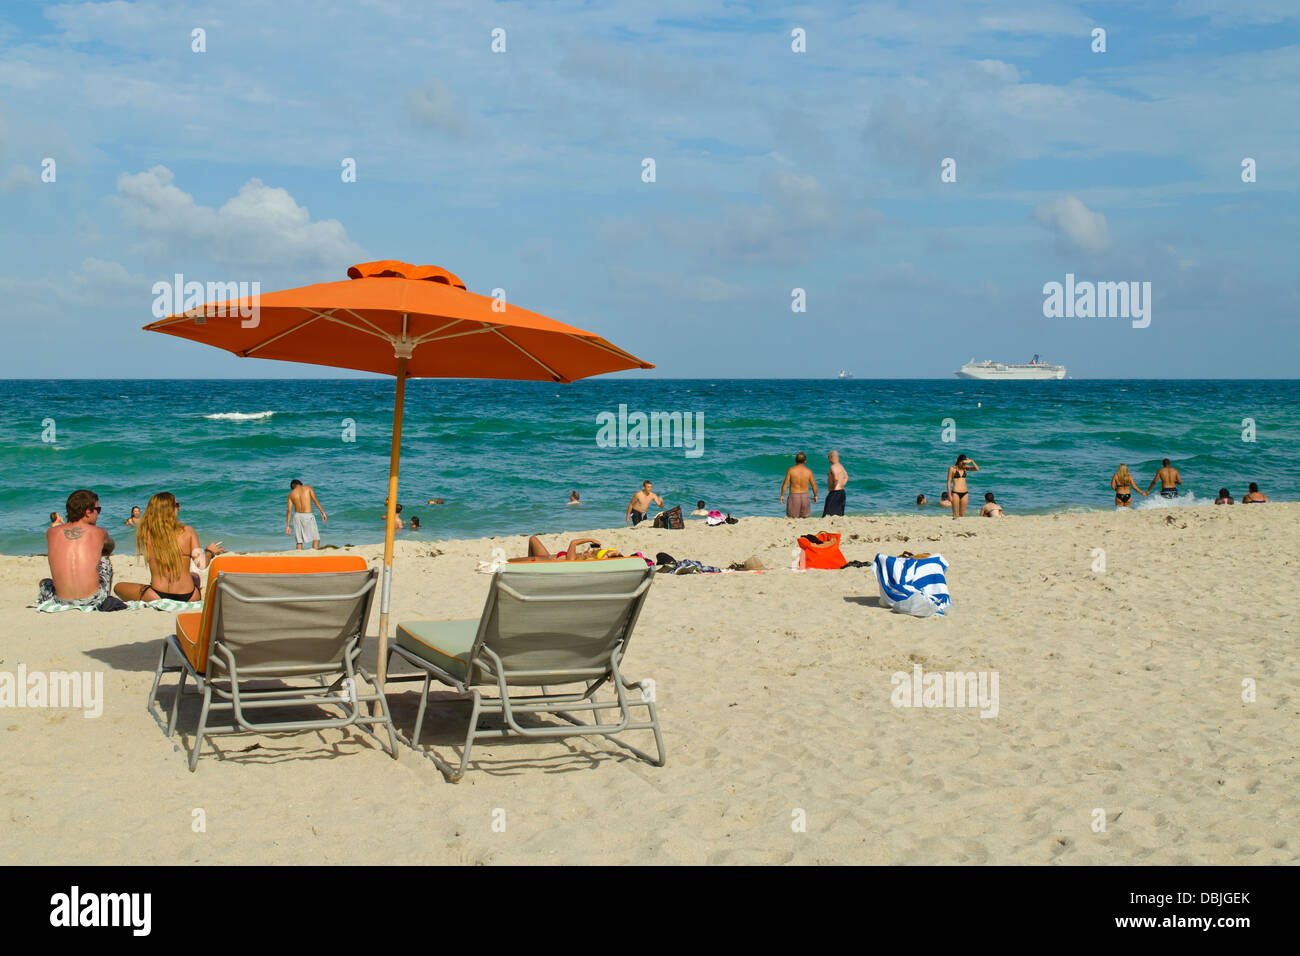 Ordinaire Beach Chairs, Orange Sun Umbrella And Many Happy Beach Goers At South Beach,  Miami Florida. A Cruise Ship Is In The Distance.